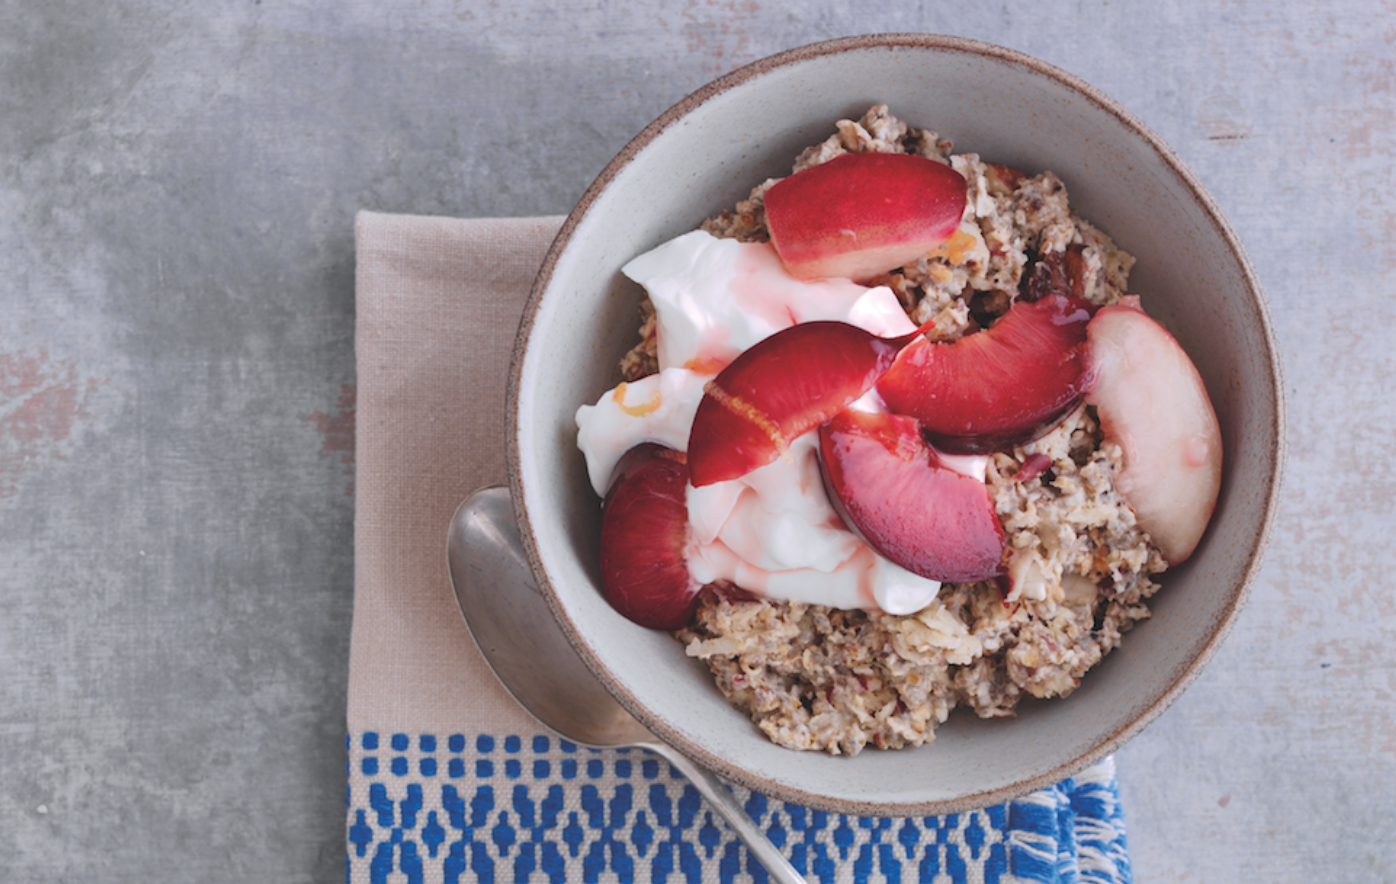 Poached Peach and Plum Festive Breakfast Recipe